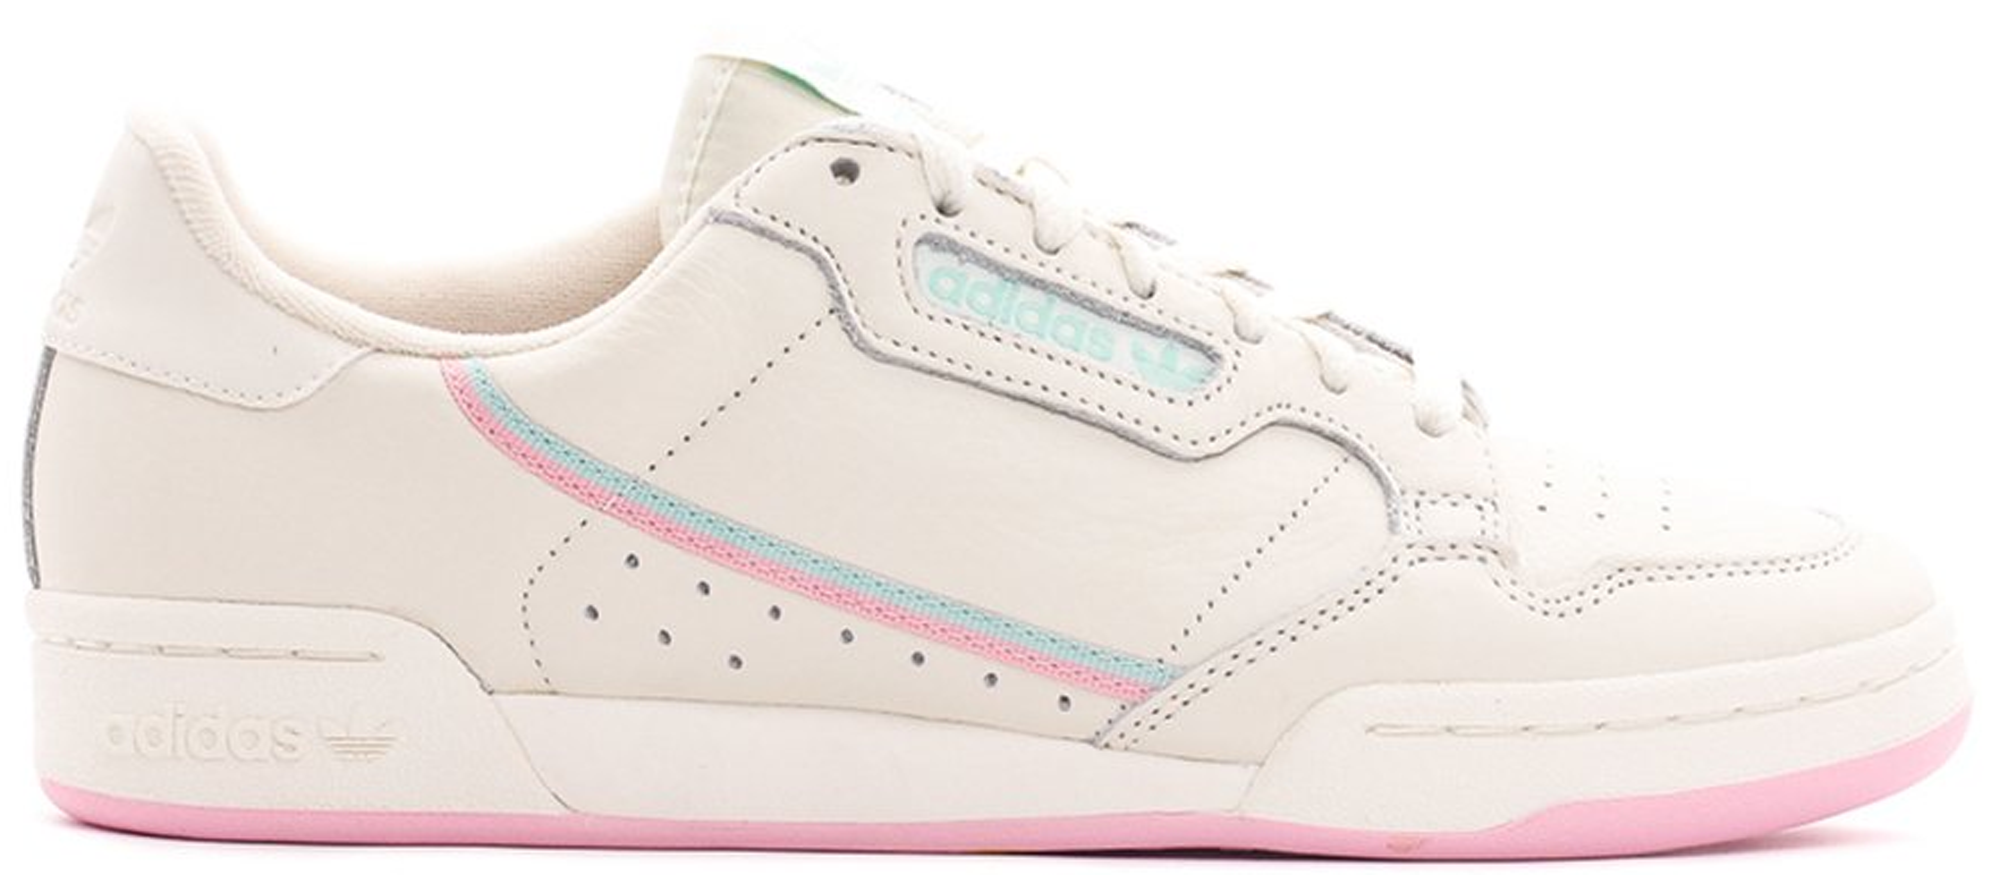 adidas continental 8 white pink